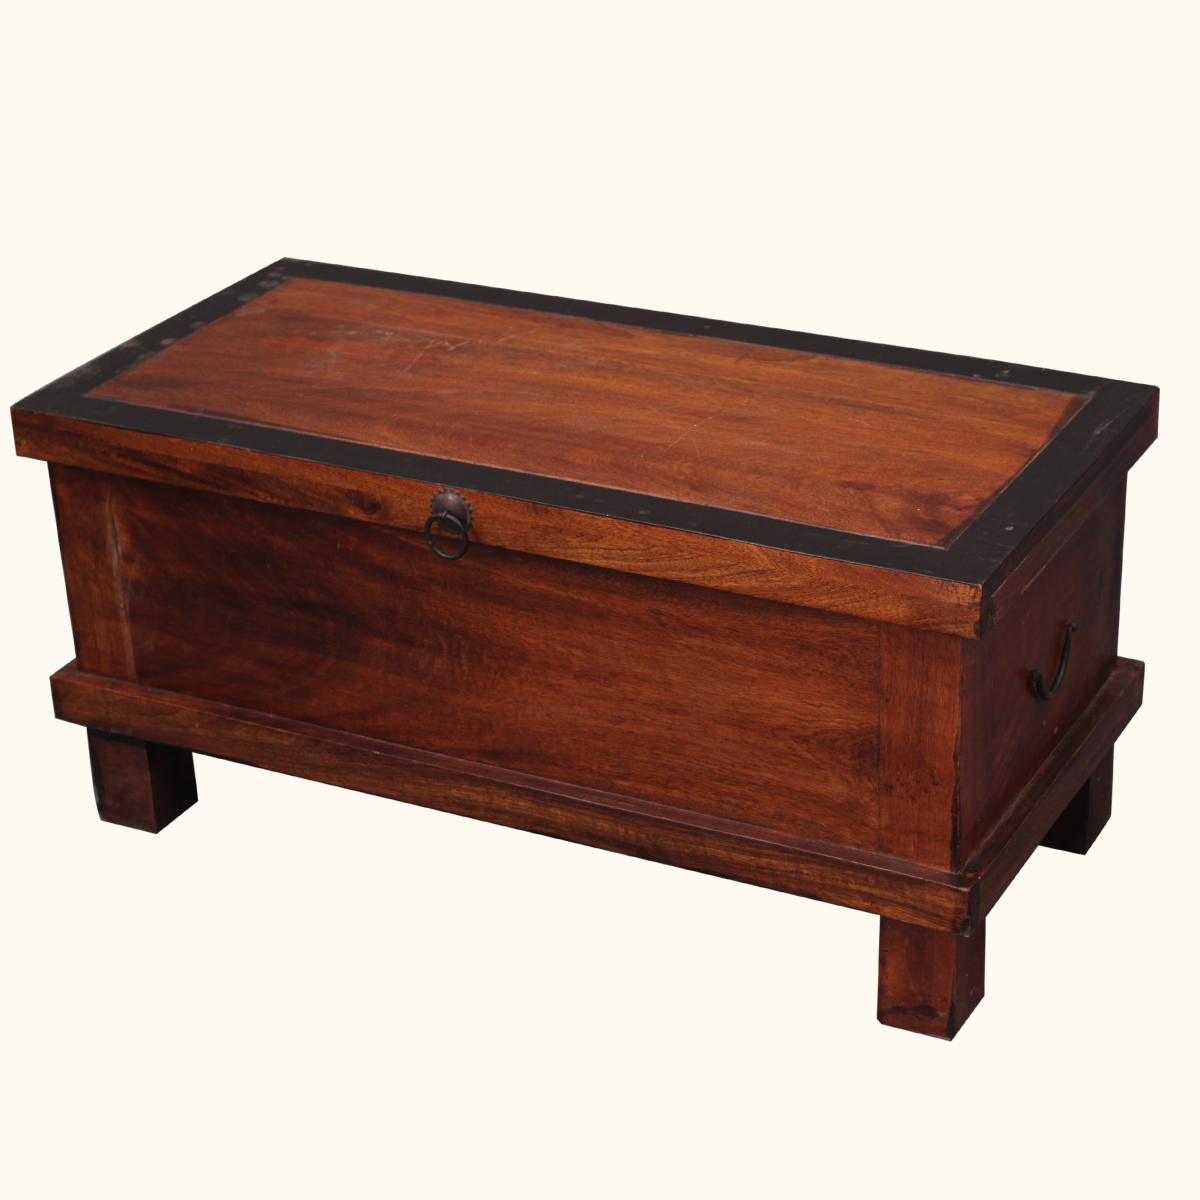 Rustic Solid Hardwood Storage Coffee Table Chest Blanket Hope Box Ebay: coffee table storage chest